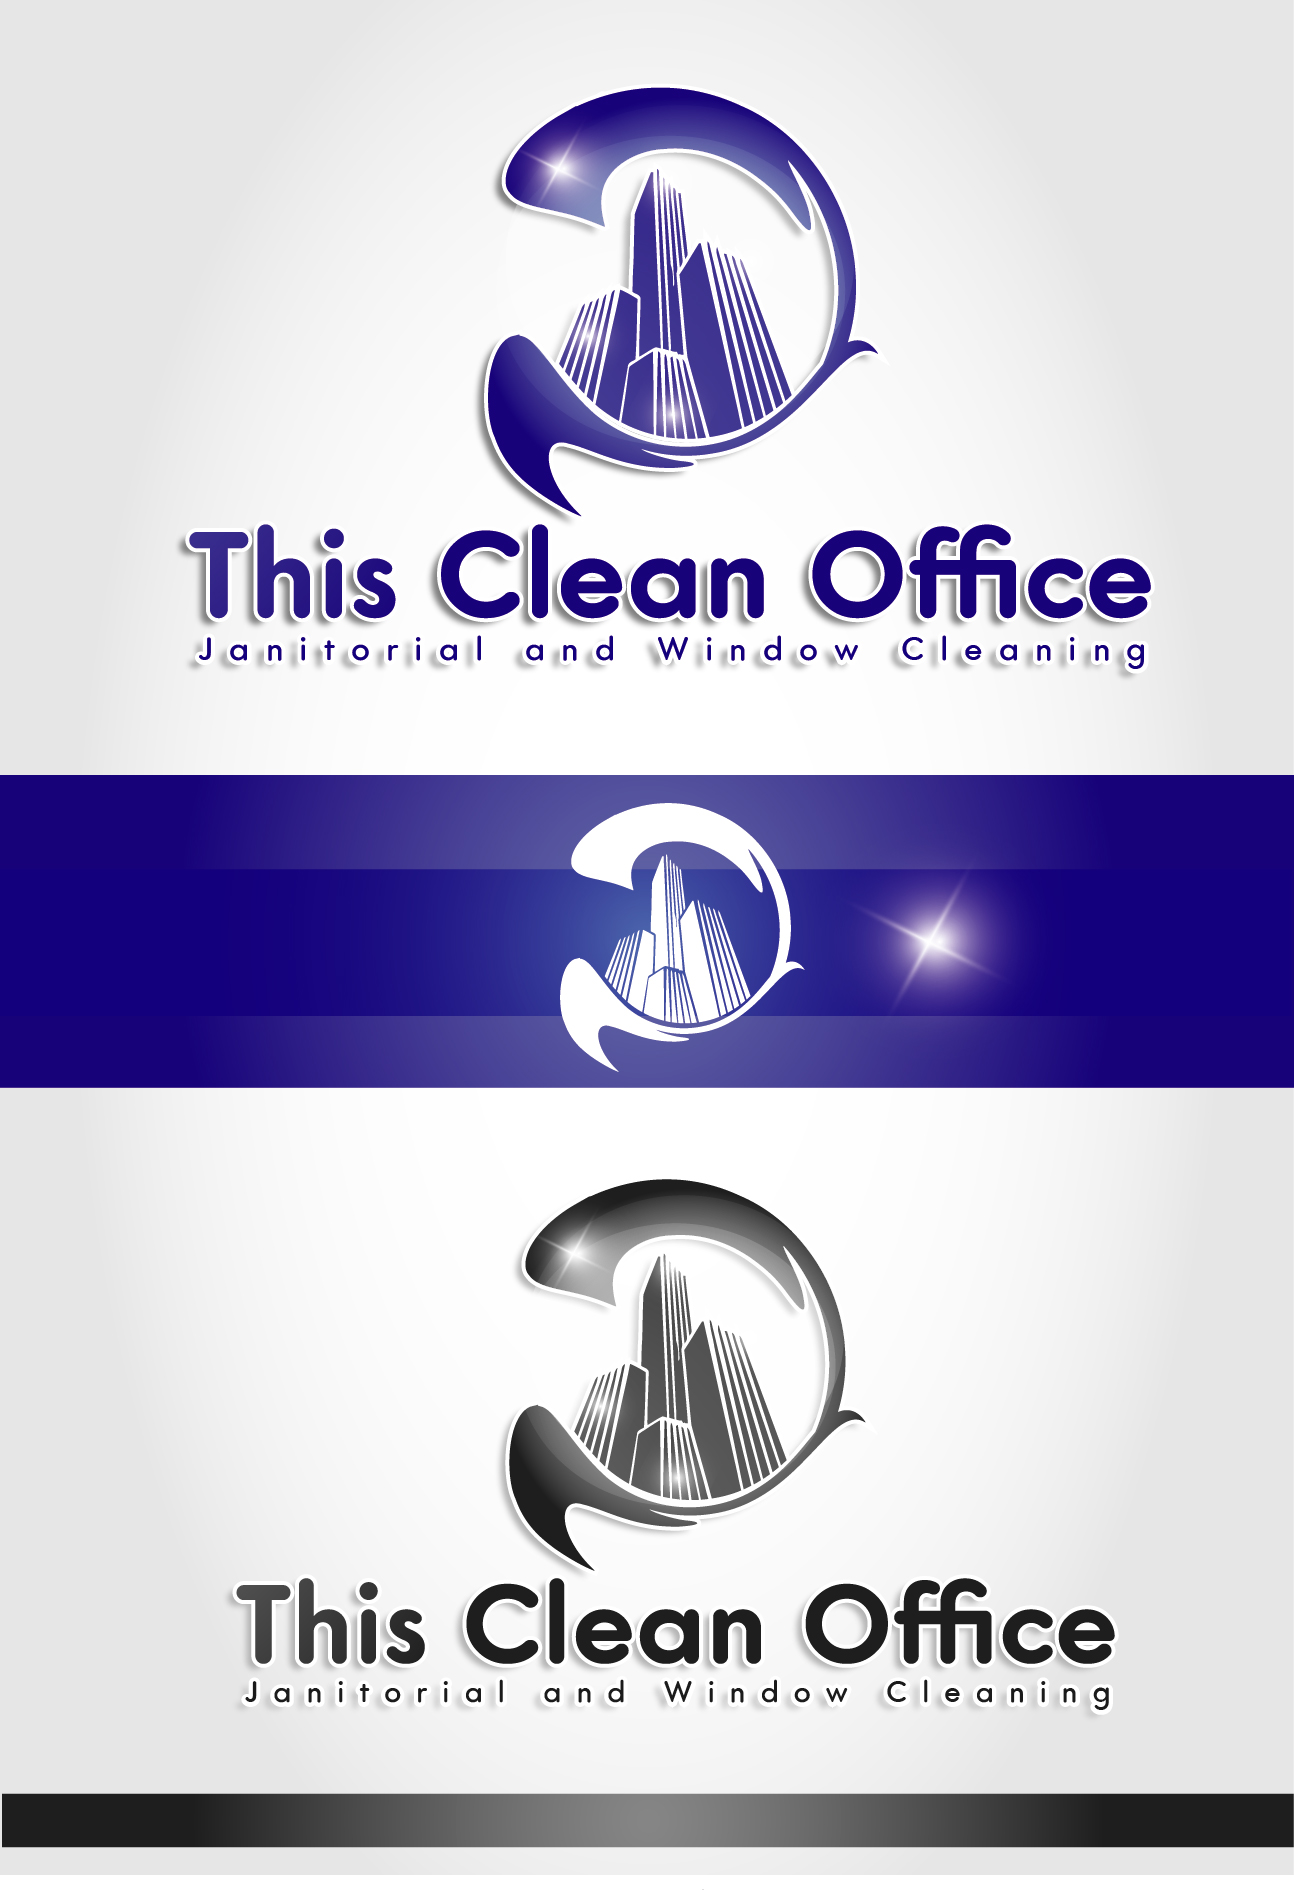 Logo Design by VENTSISLAV KOVACHEV - Entry No. 17 in the Logo Design Contest Professional and Unforgettable Logo Design for This Clean Office.